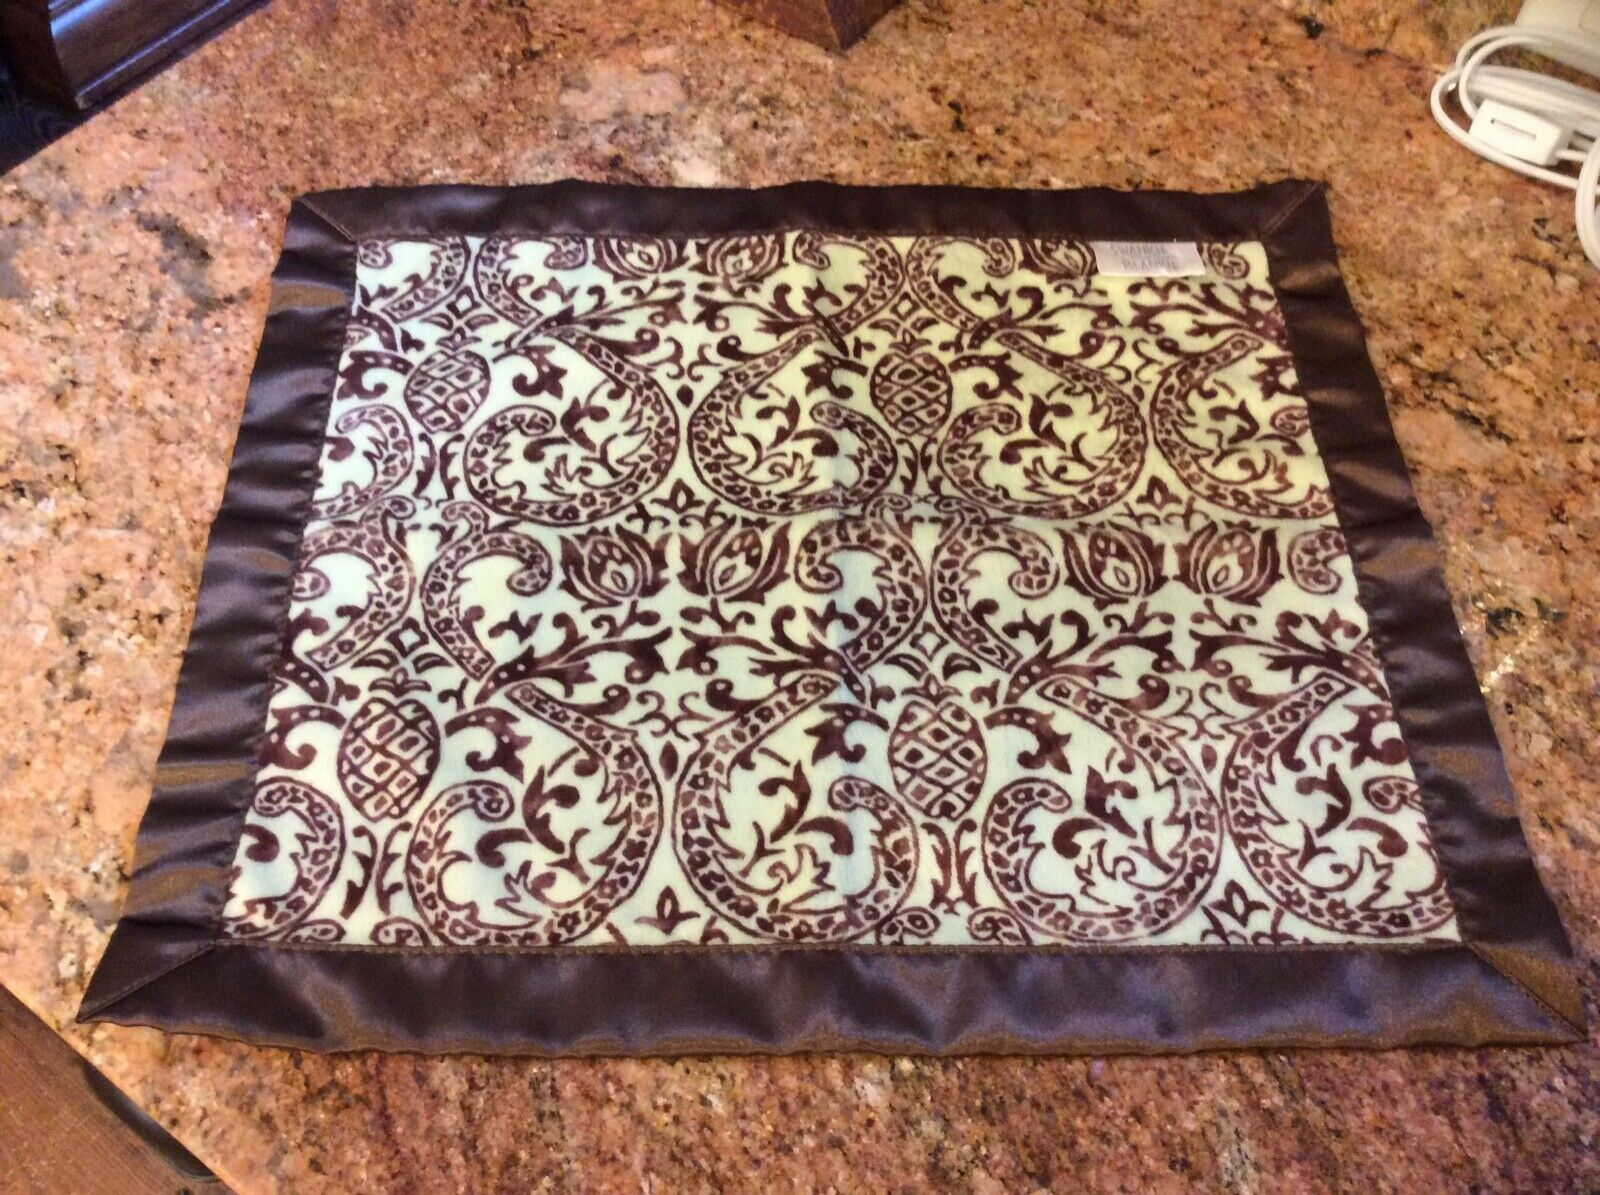 Swankie Blankie Plush Satin Baby Security Blanket NWOT - $10.00